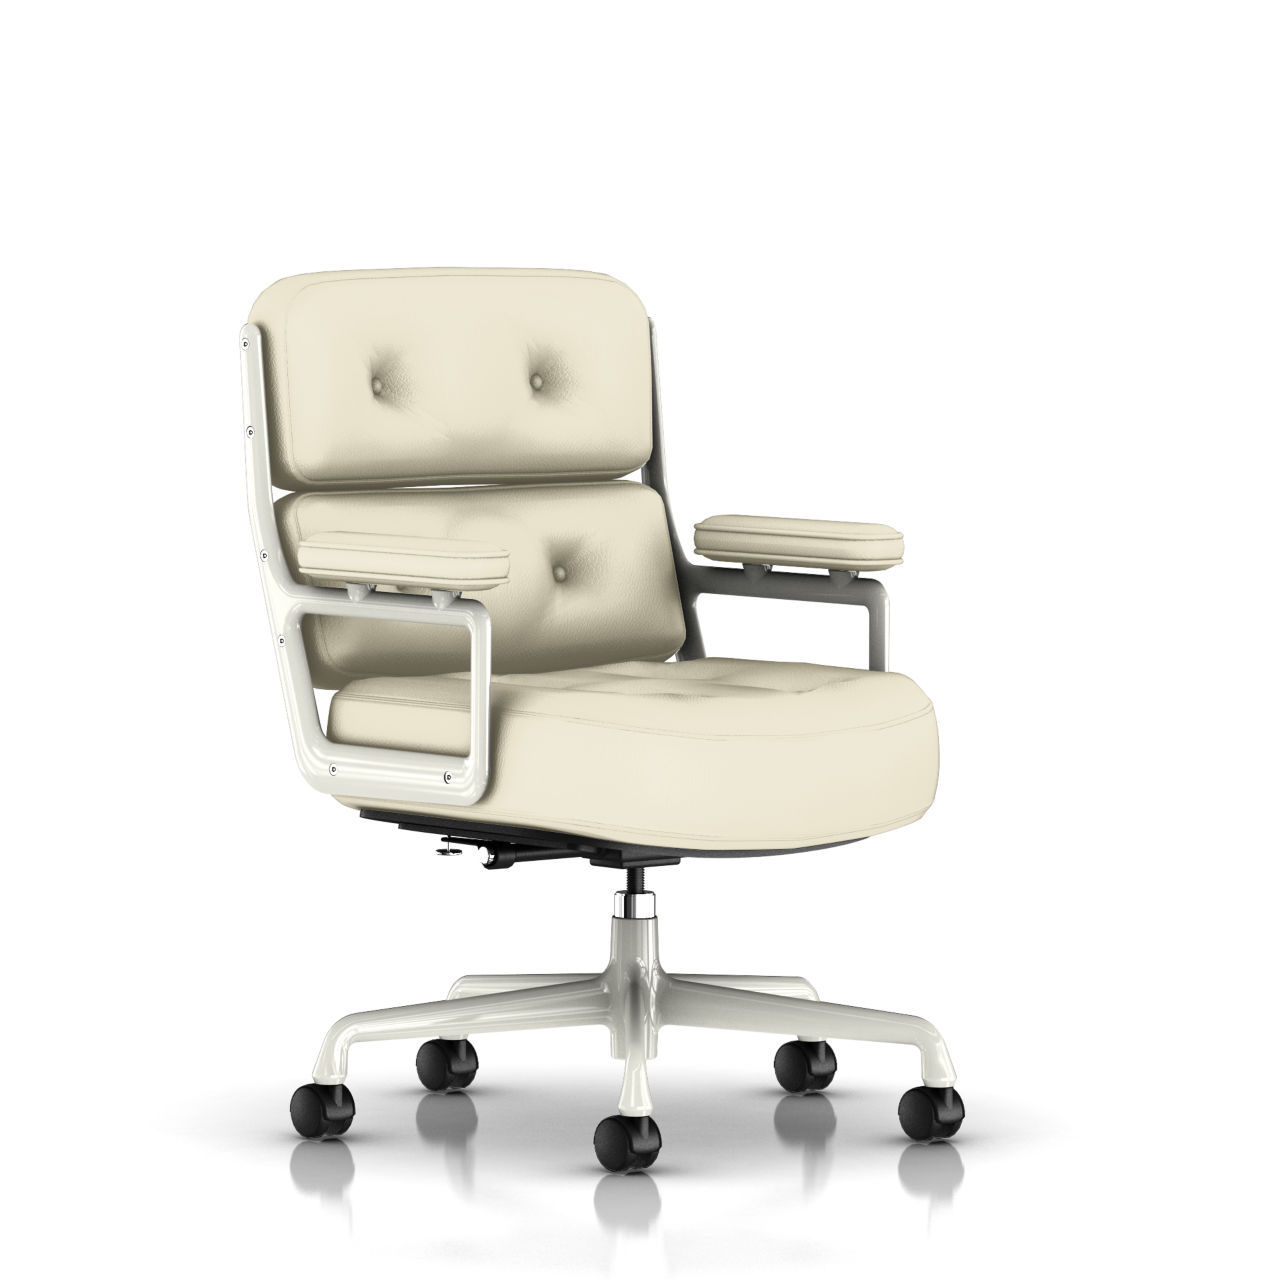 Eames Executive Work Chair in Ivory Leather by Herman Miller